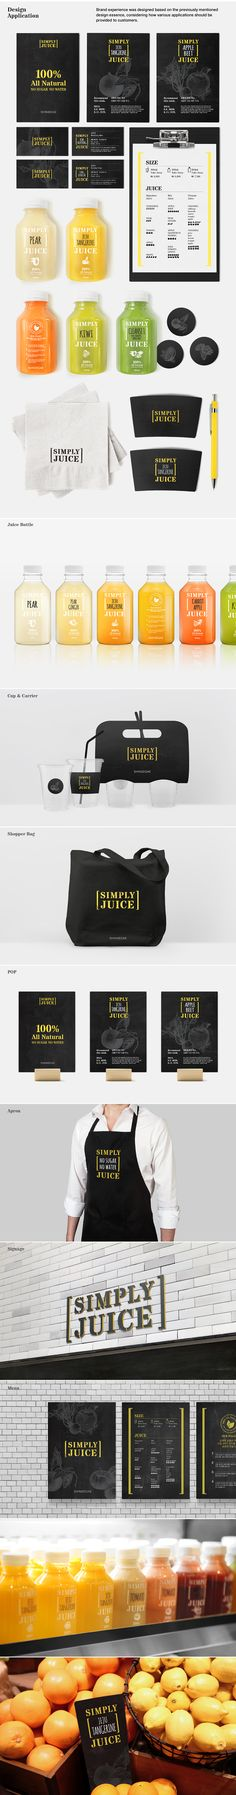 SHINSEGAE Simply Juice Brand eXperience Design on Branding Served